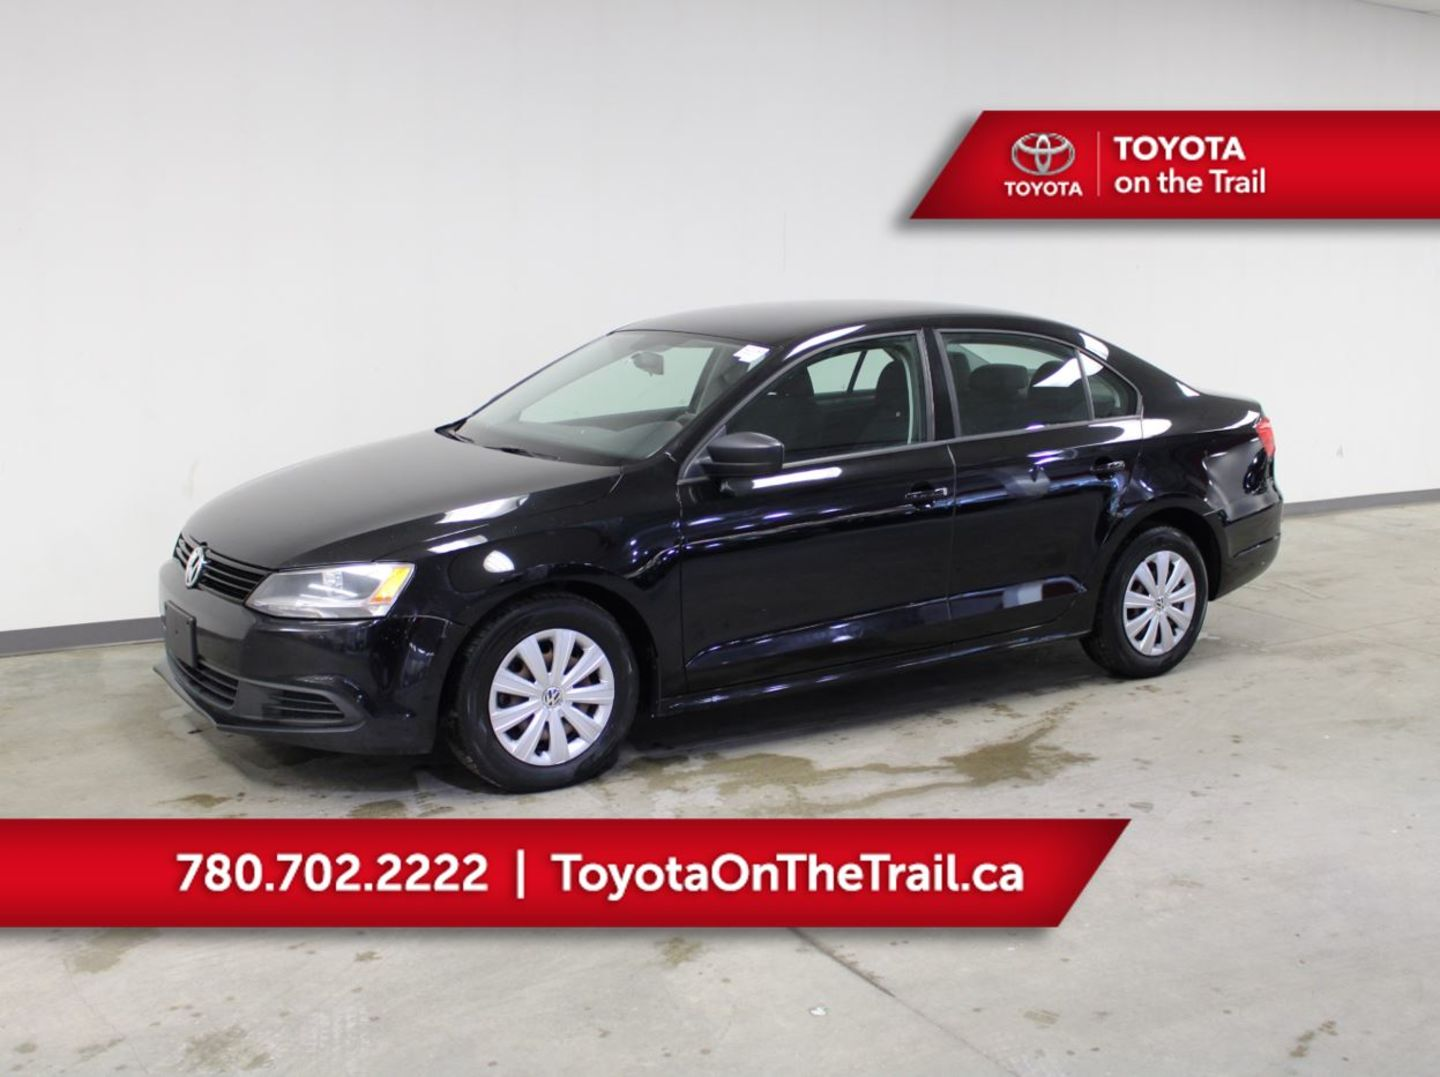 2011 Volkswagen Jetta Sedan Trendline+ for sale in Edmonton, Alberta